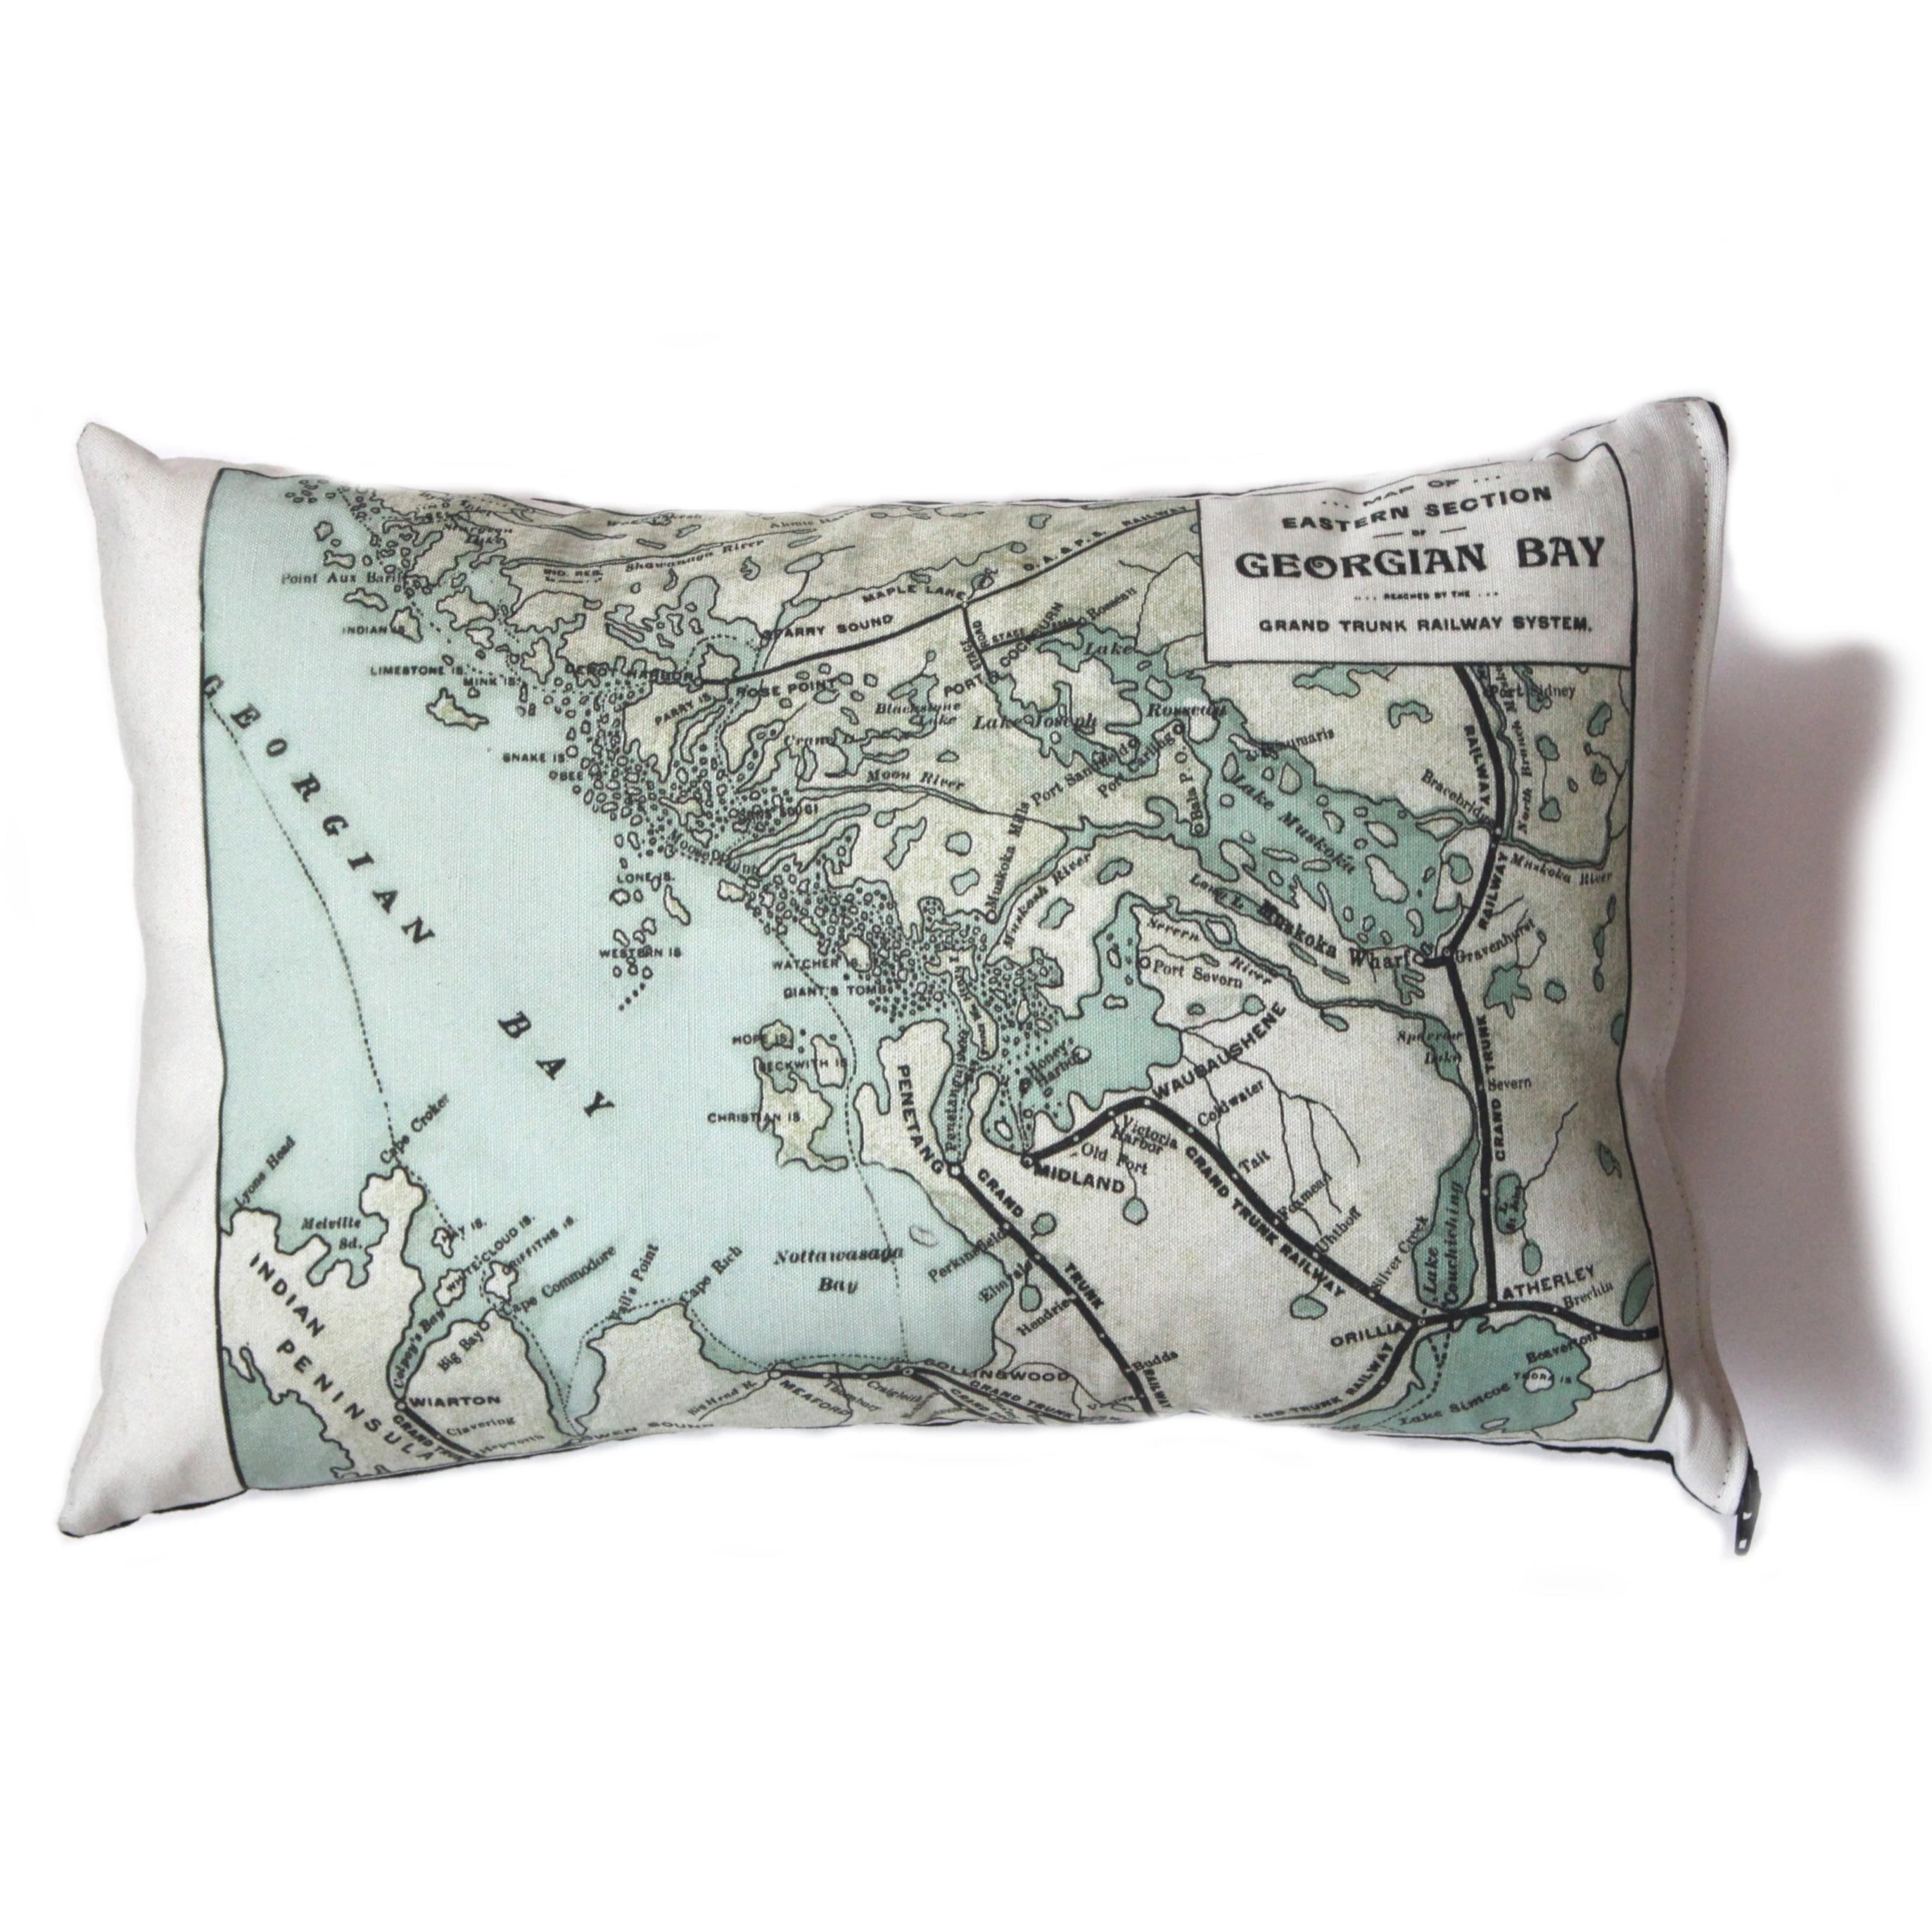 Georgian Bay Map Pillow - Vintage Map Co.